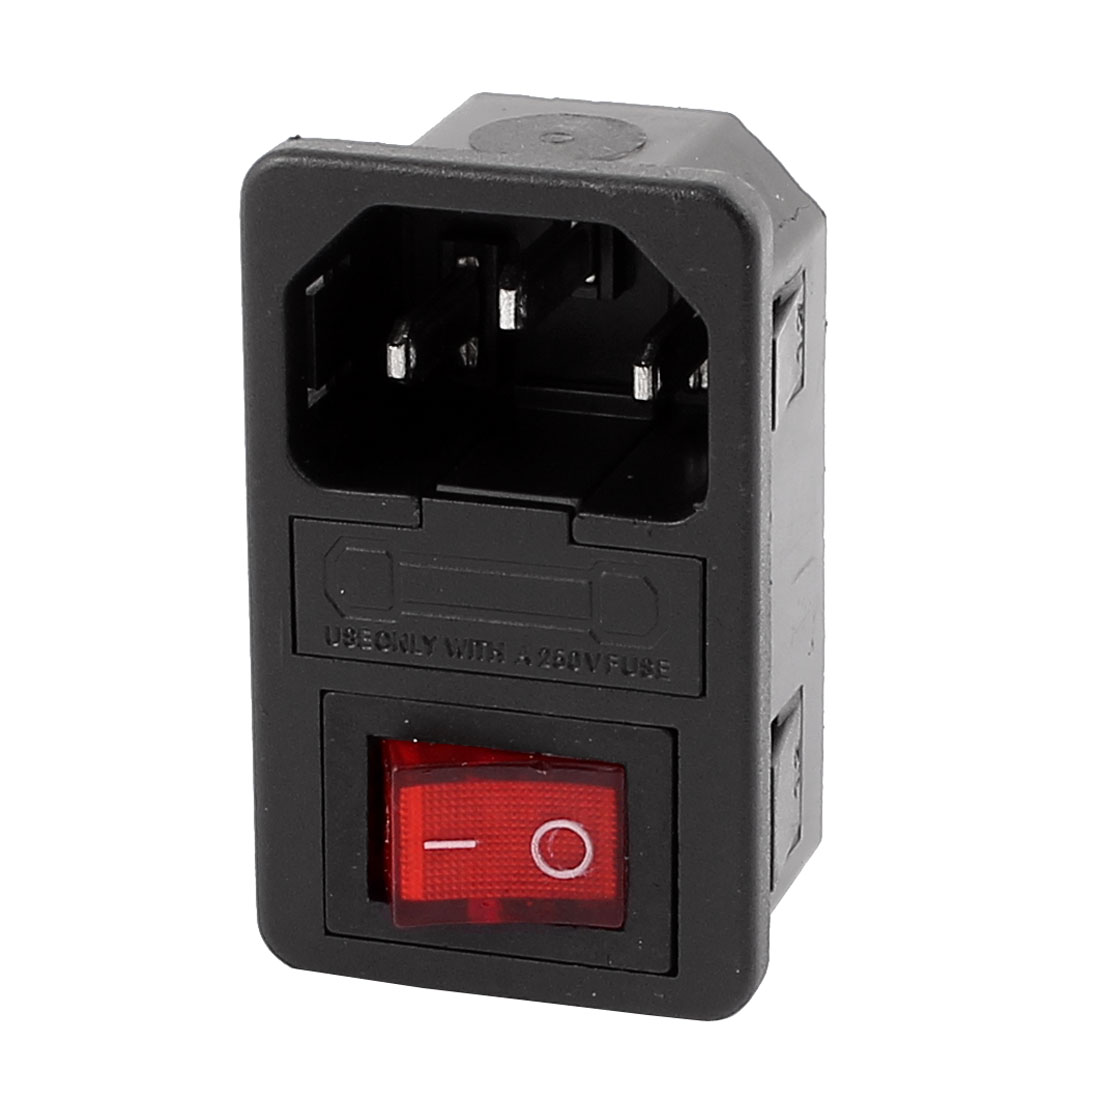 AC 250V 10A 3 Terminals Red LED Rocker Switch Inlet Power Socket w Fuse Holder